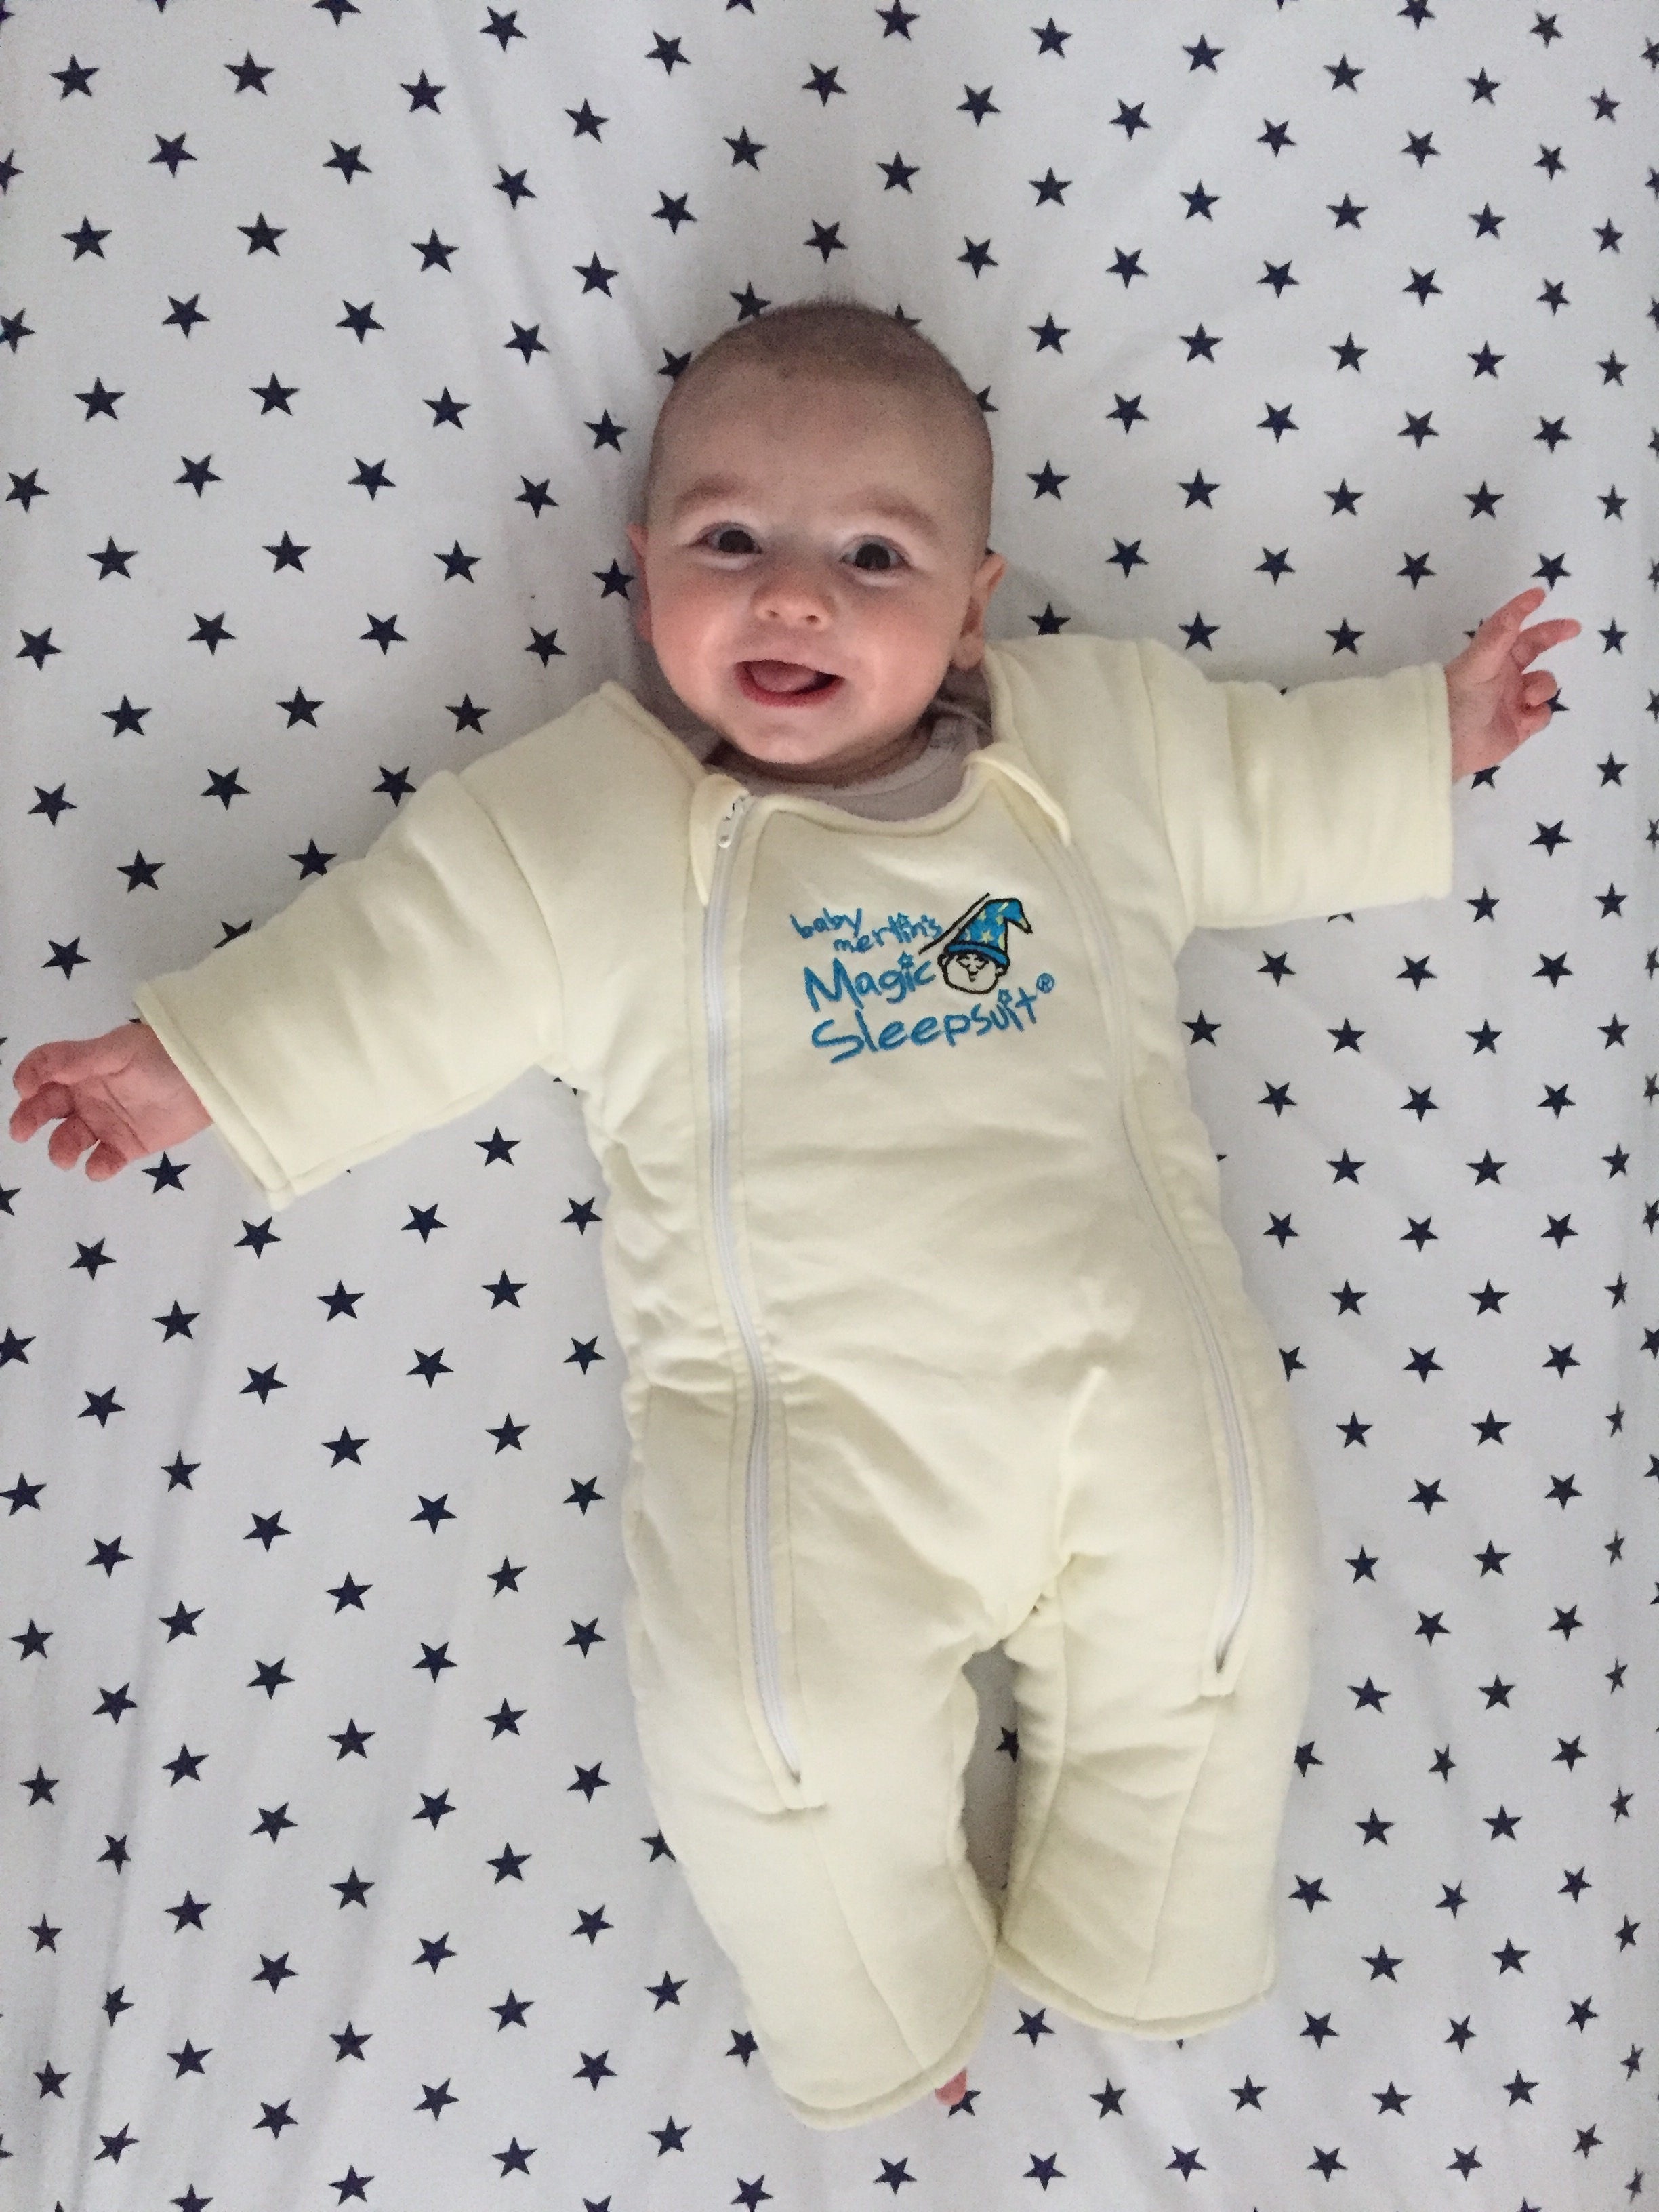 Magnificent Most We Still Rely On Trusty Swing To Help Hudson Fall Asleepand We Recently Purchased Magic Sleep Suit To Help Hudson Four Month Time Capsule Norrn Va Newborn baby Merlin Sleep Suit